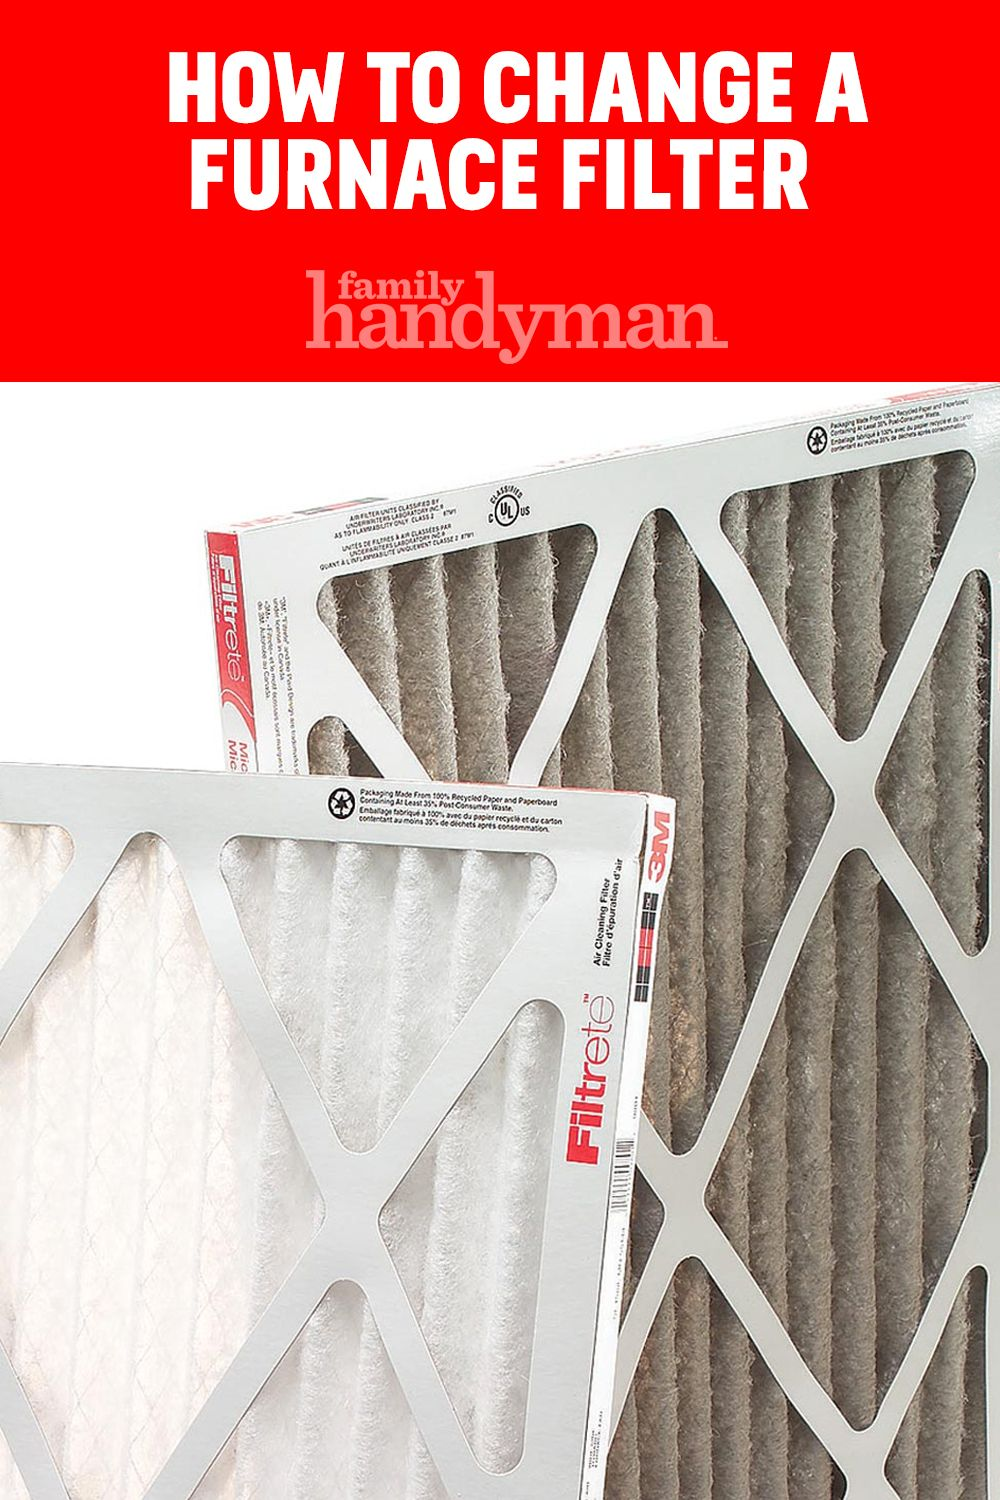 How to Change a Furnace Filter Furnace filters, Furnace